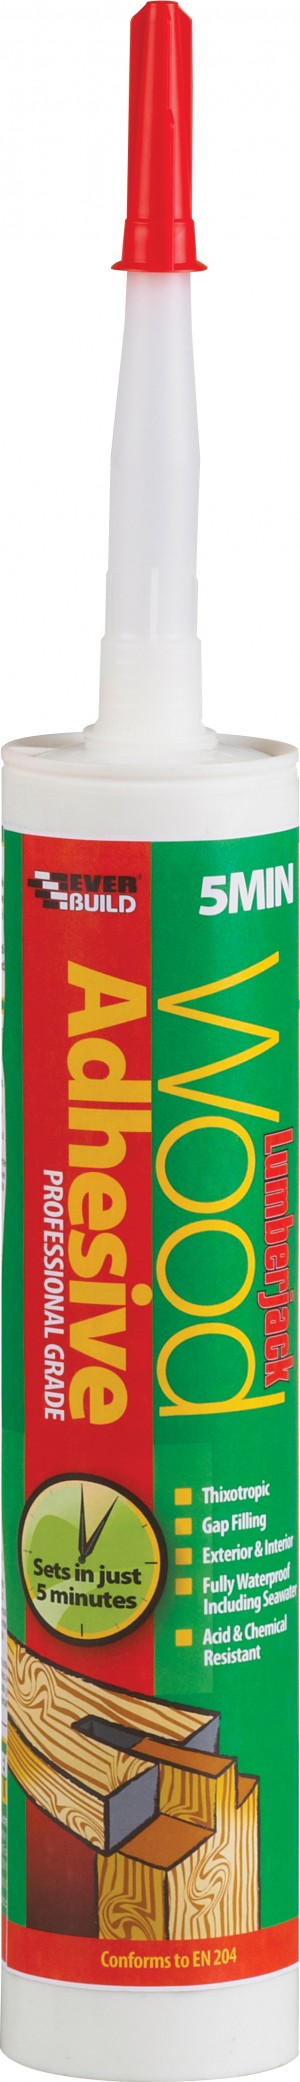 SikaEverbuild Lumberjack 5 Min PU Wood Glue 310ml Clear [EVB5MINPU3]